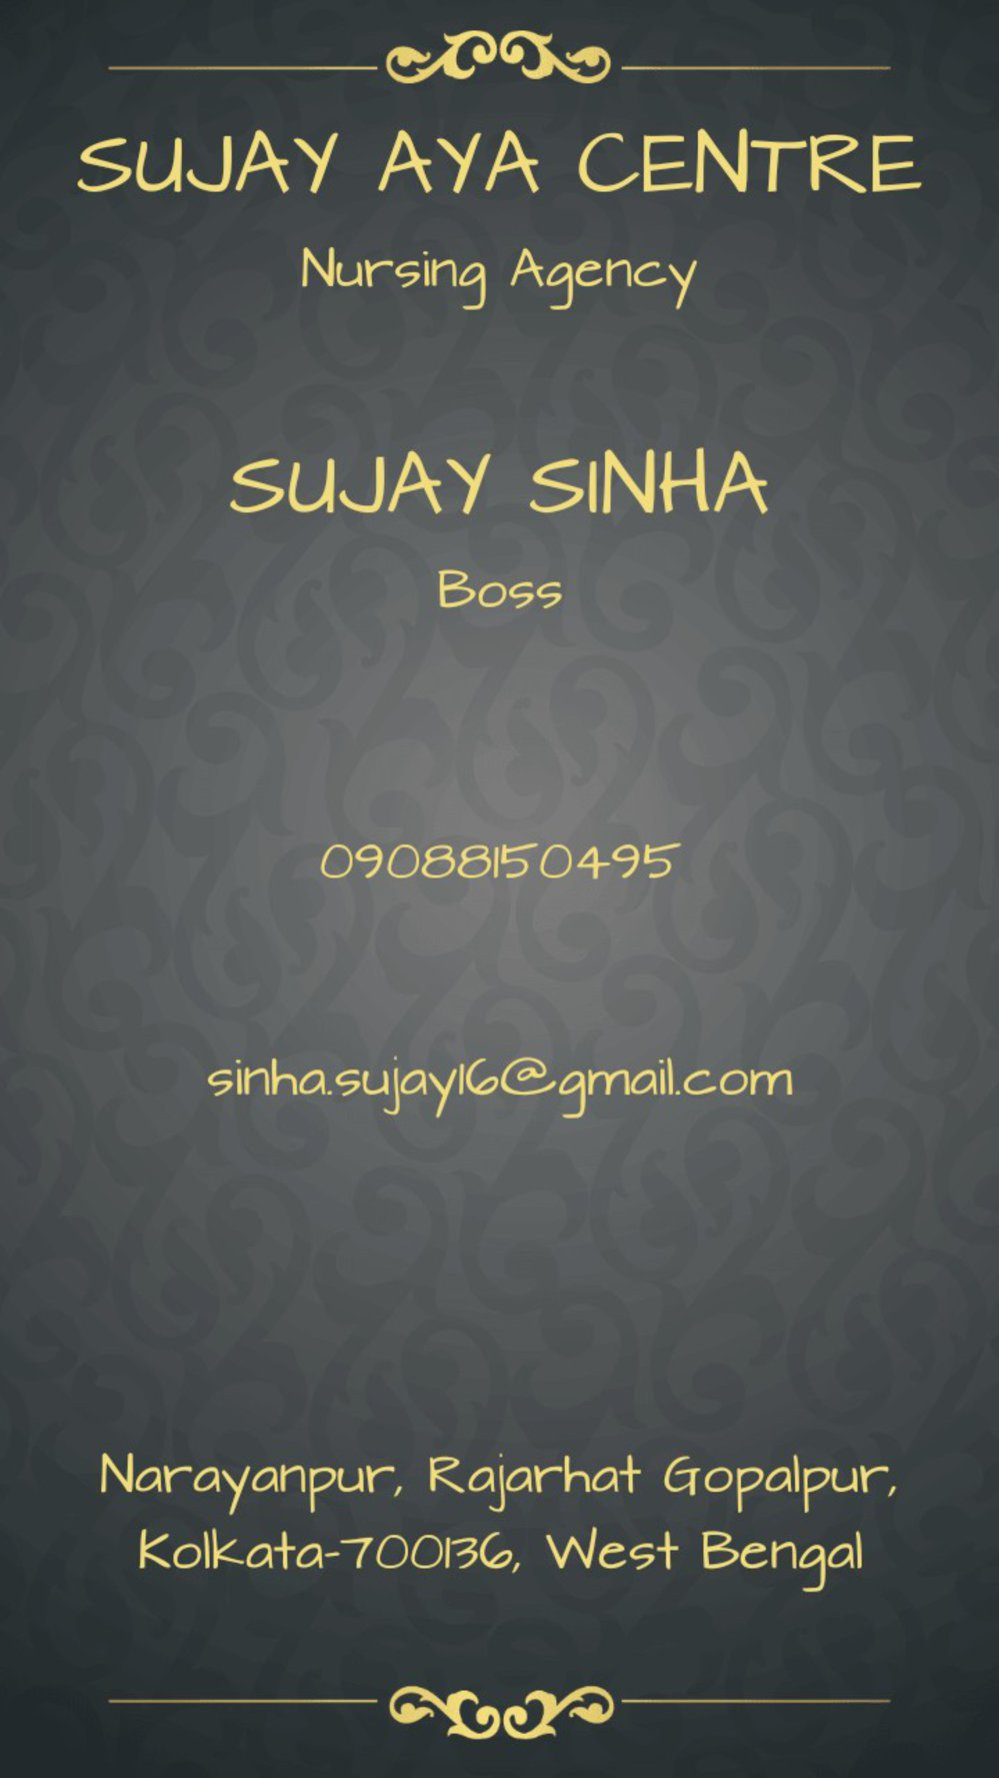 SUJAY AYA CENTRE cover